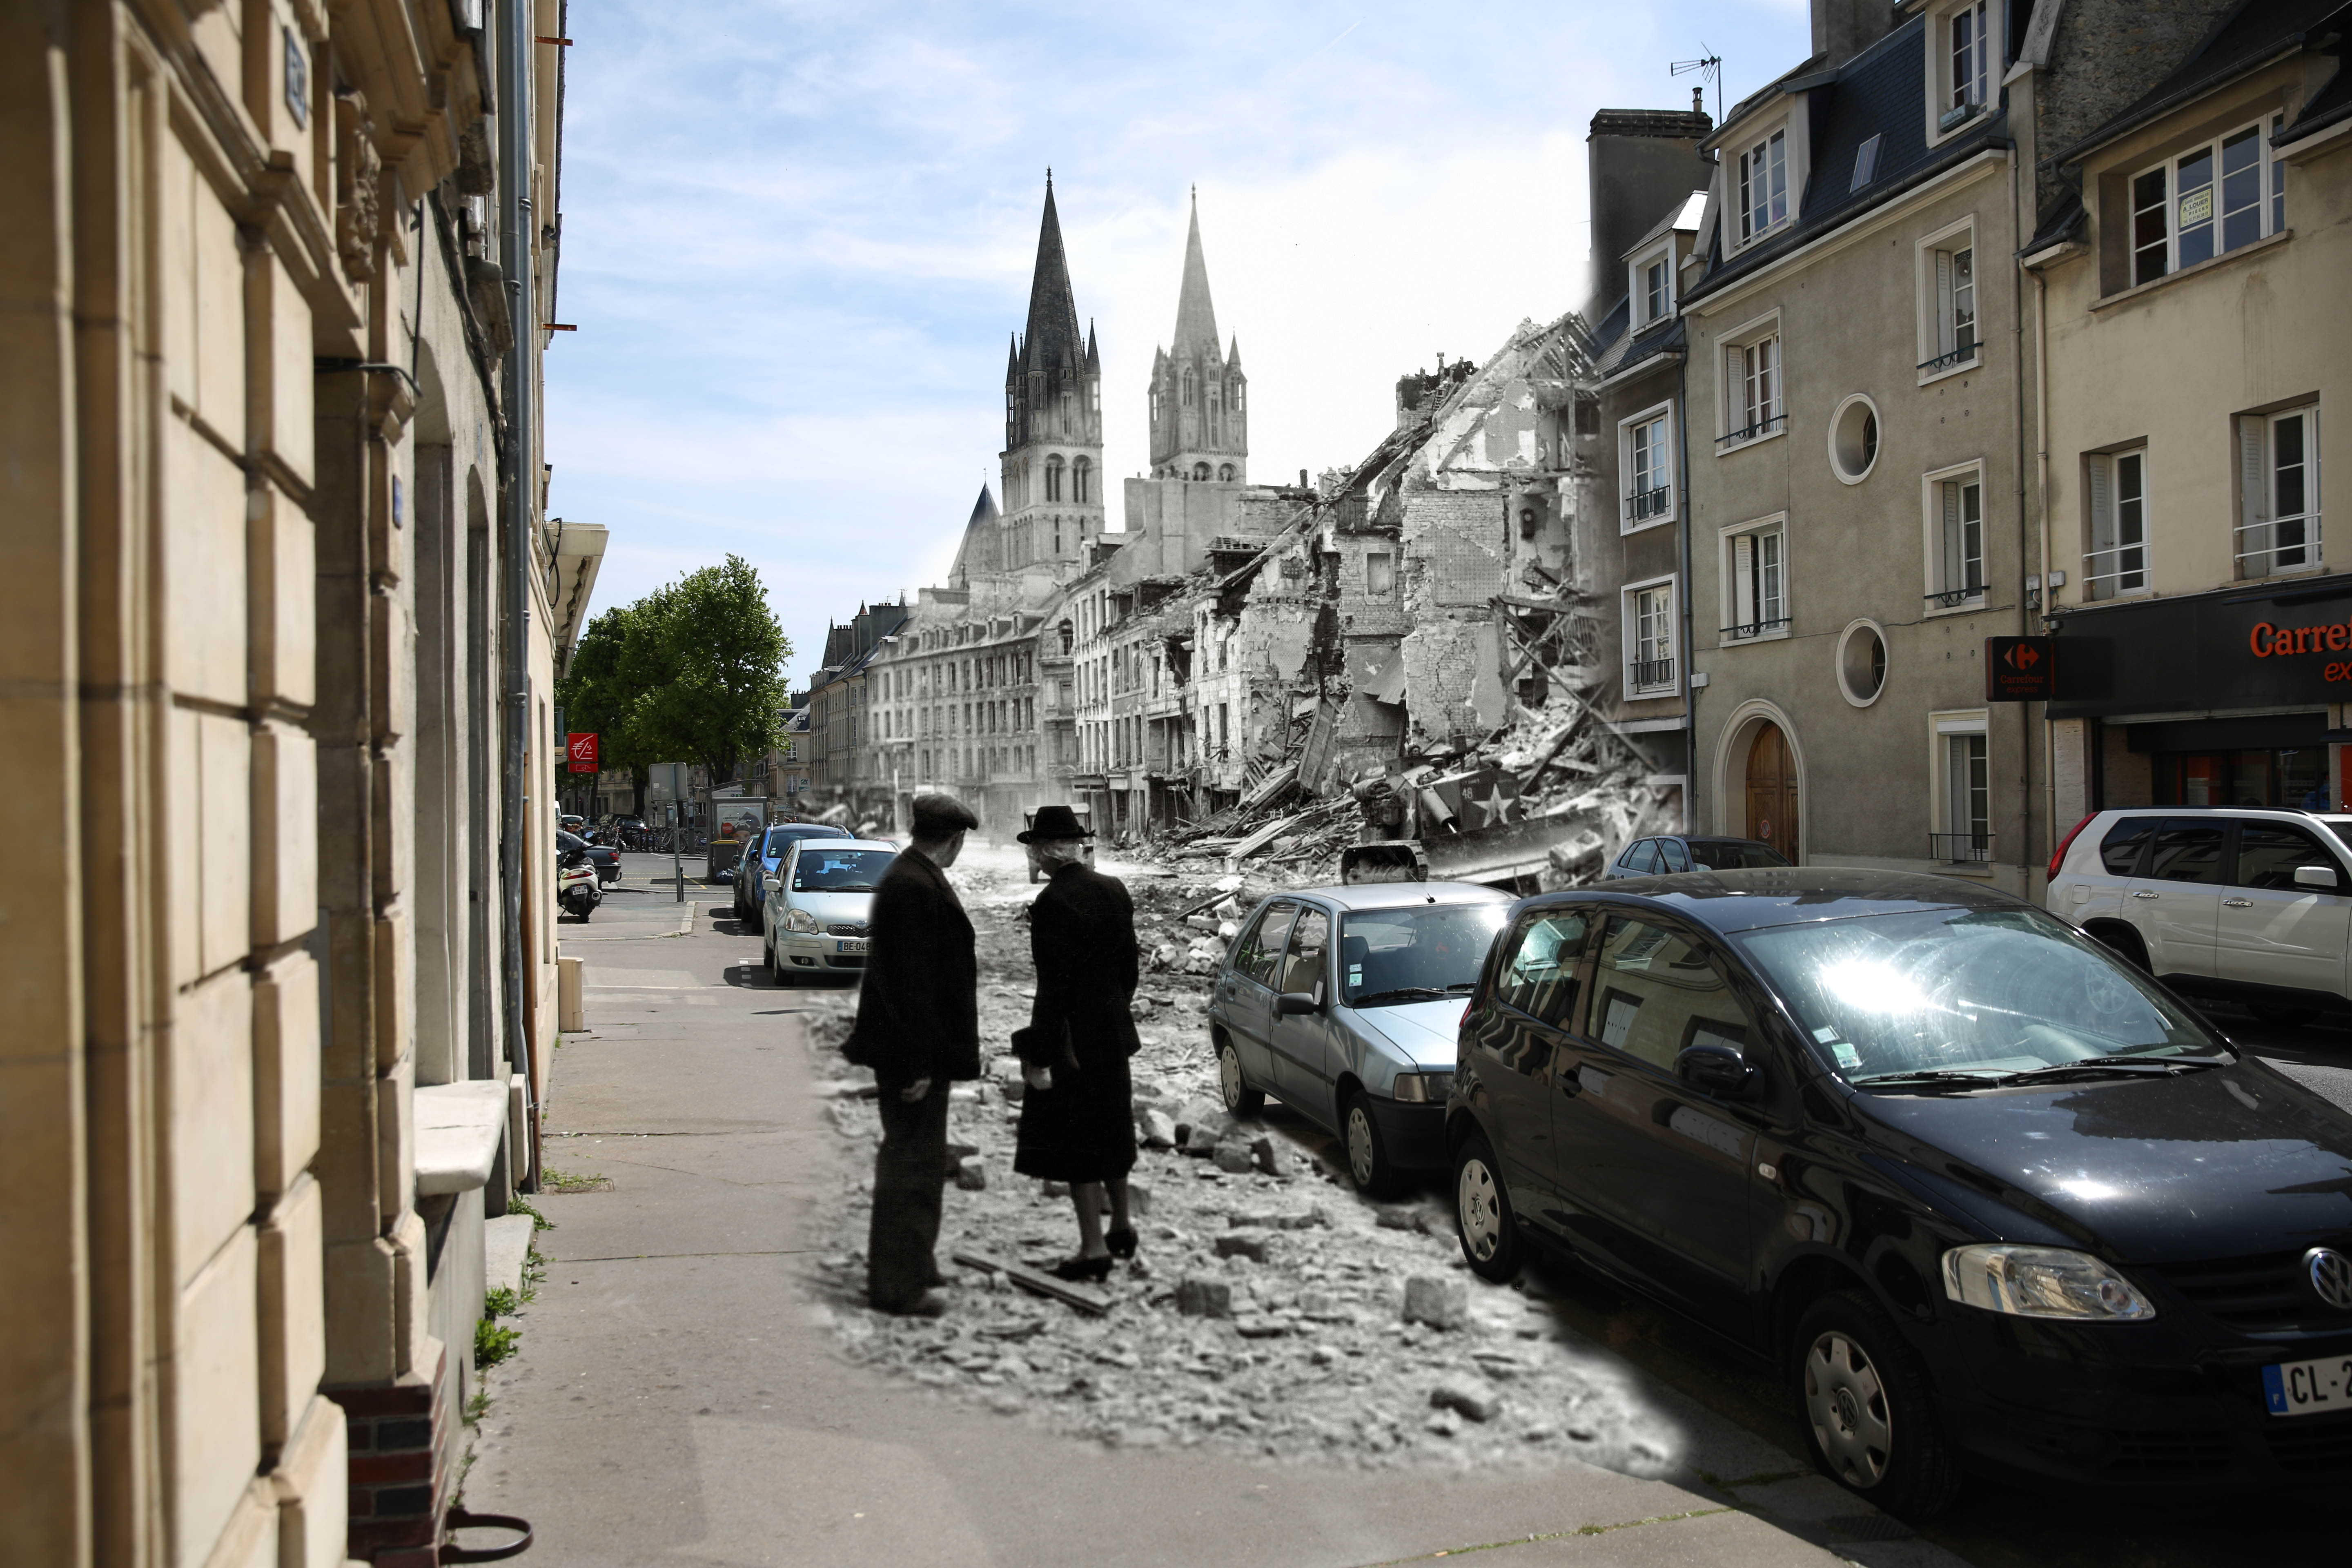 A view of the rue de Bayeux on May 5, 2014 in Caen, France. Overlay: An older couple watches a Canadian soldier with a bulldozer working in the ruins of a house in the rue de Bayeux on July 10, 1944.